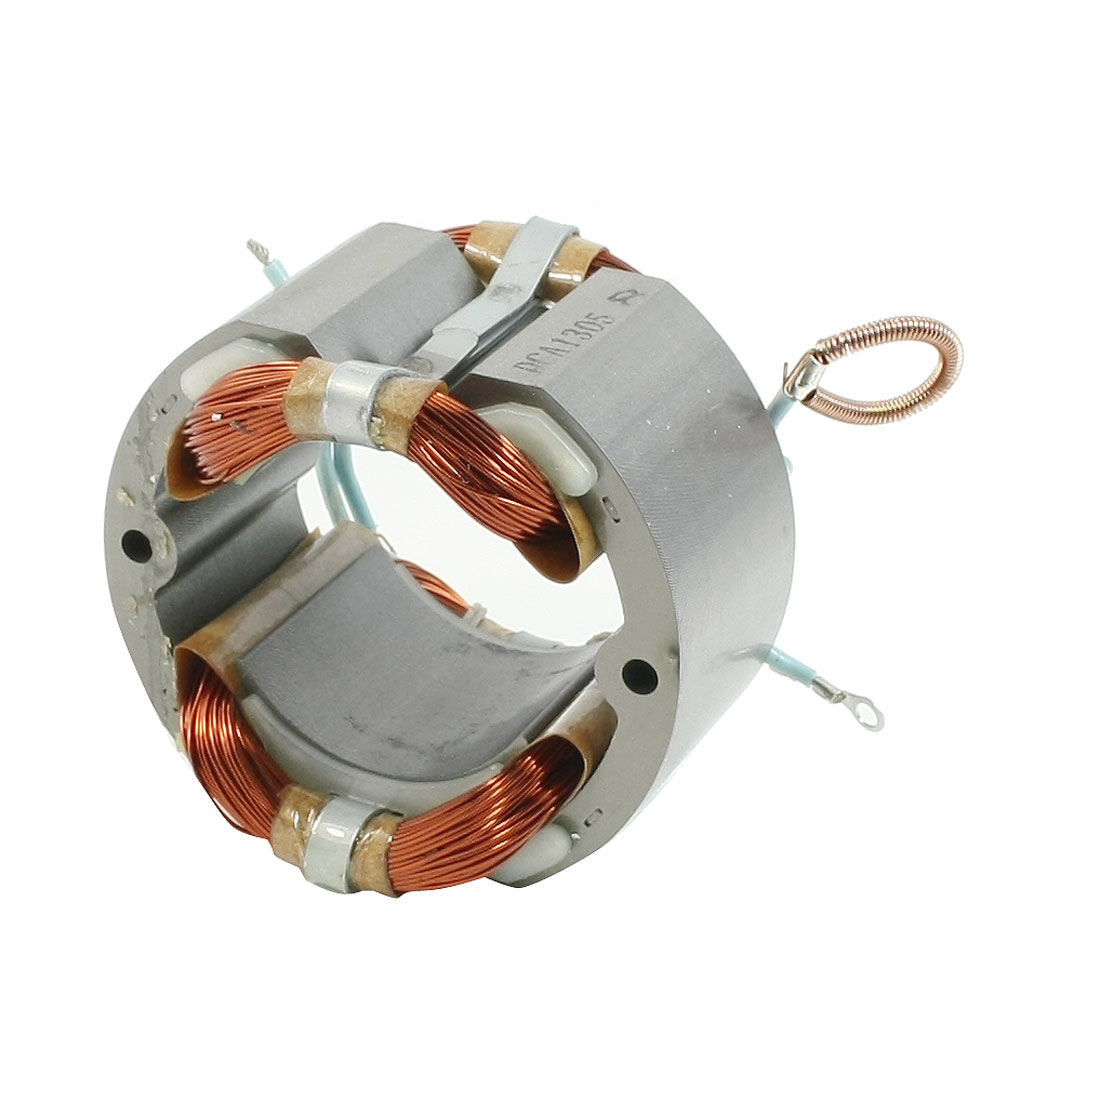 AC220V Electric Breaker 54mm Core 4 Cable Motor Stator for Hitachi PH65A